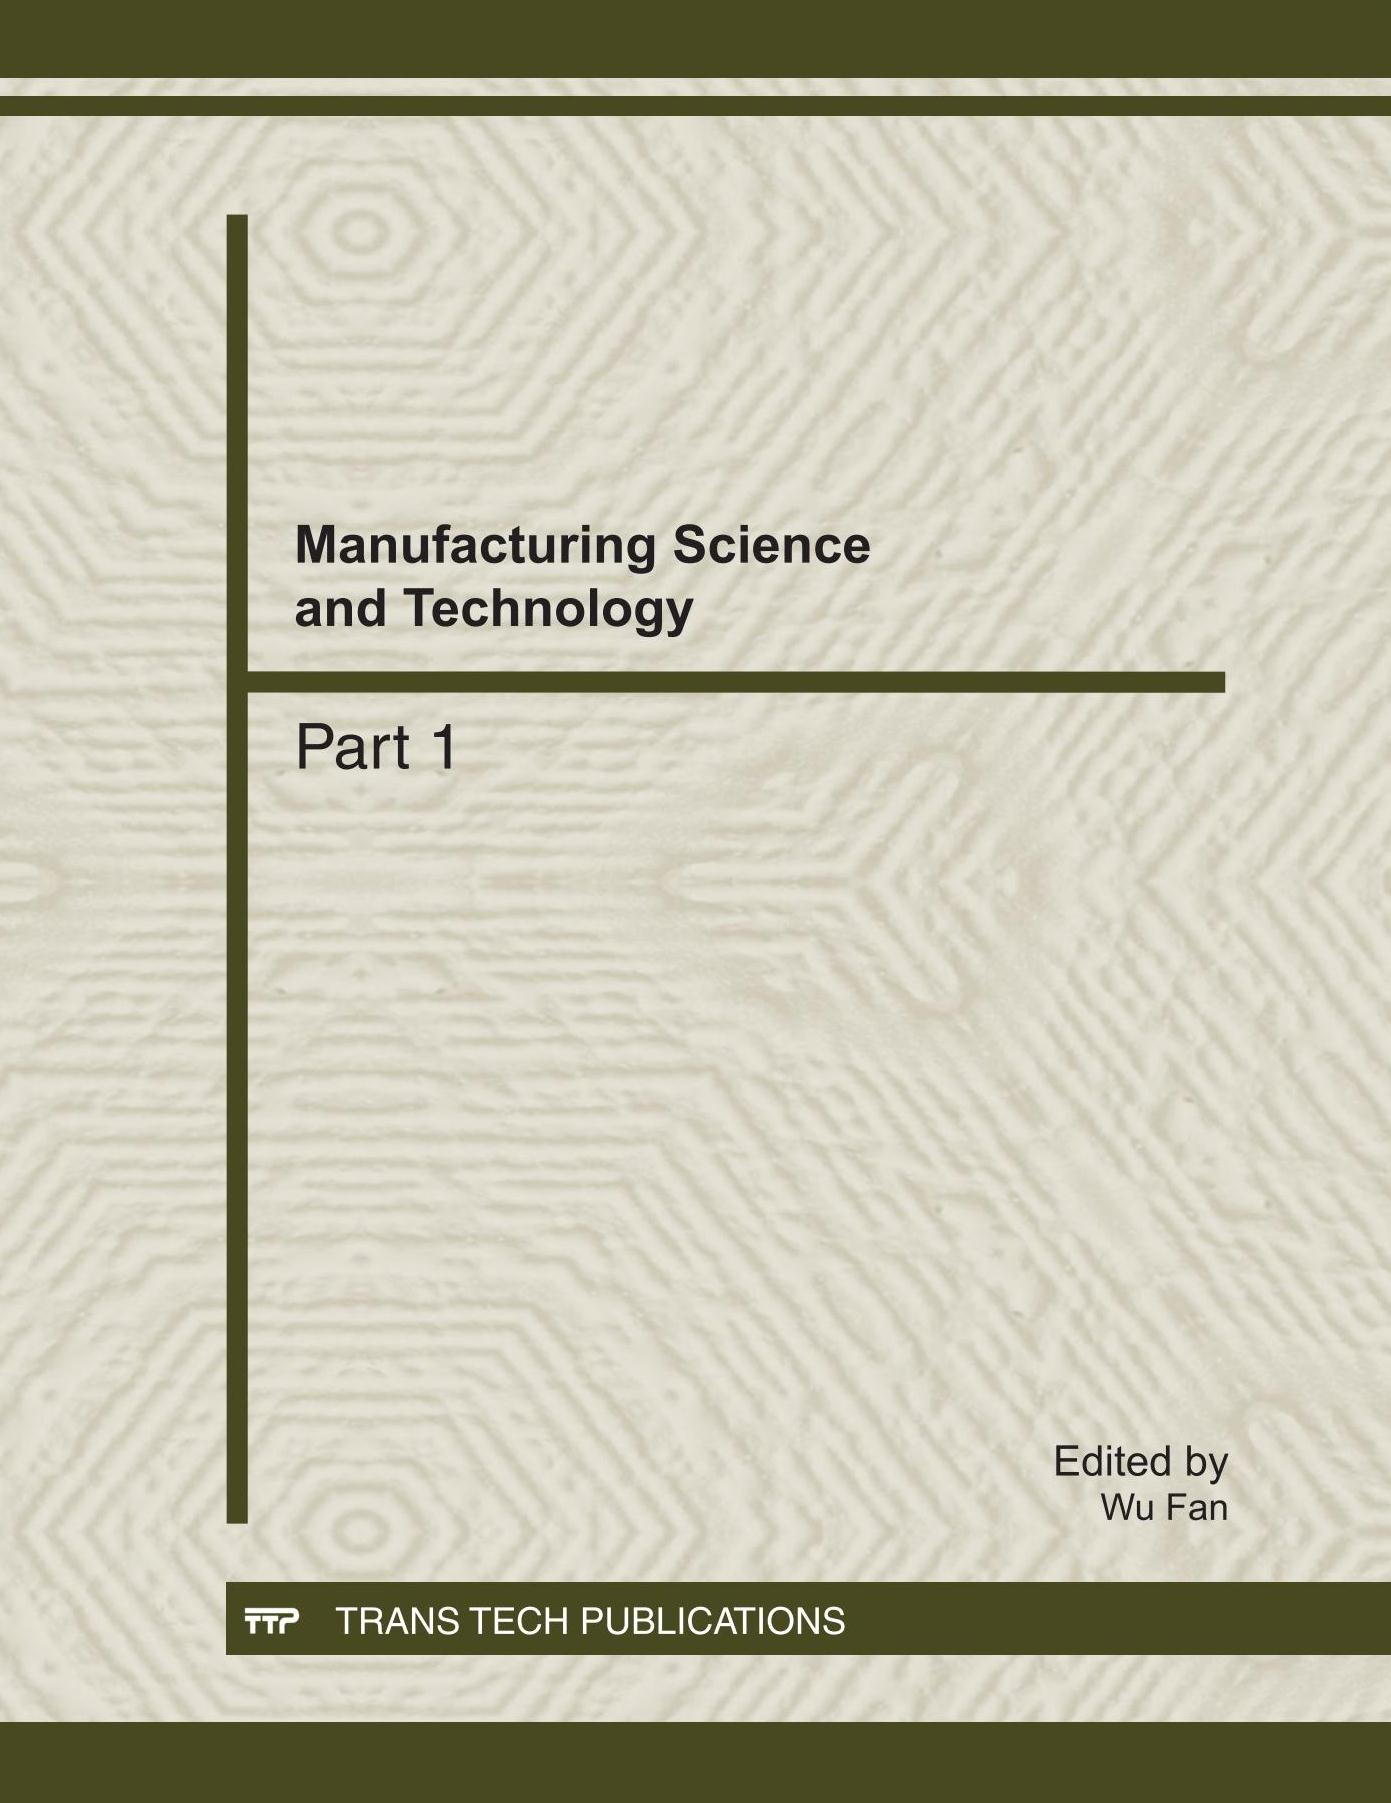 Manufacturing Science and Technology, ICMST2011